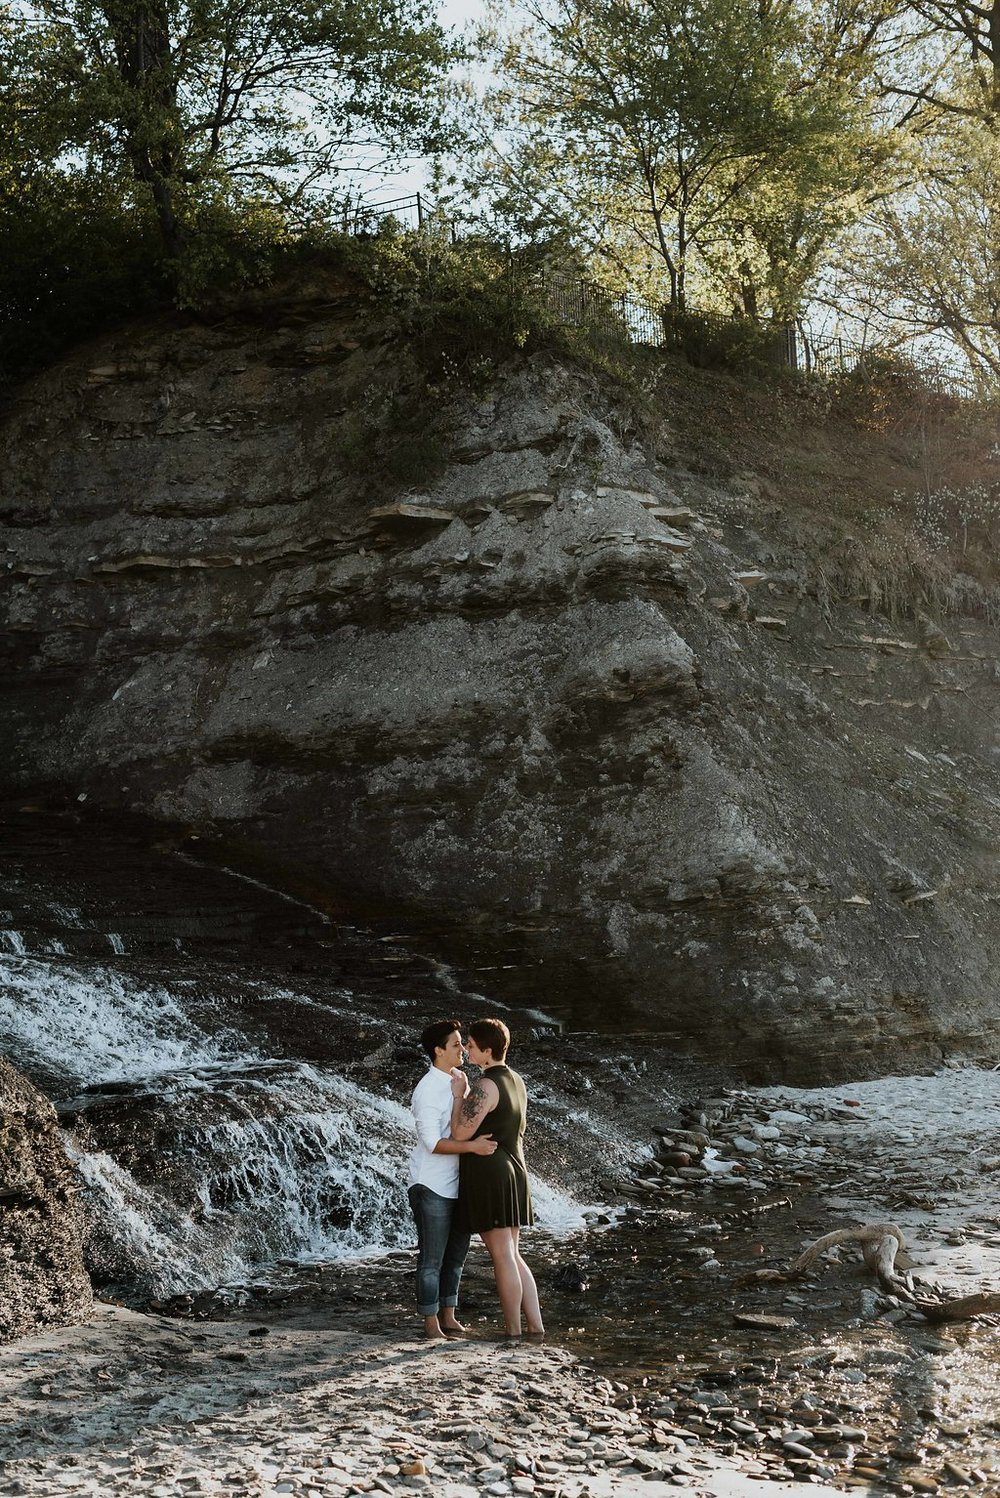 Waterfall-Couples-Session_Em+Katie_MJPHOTO-184.jpg